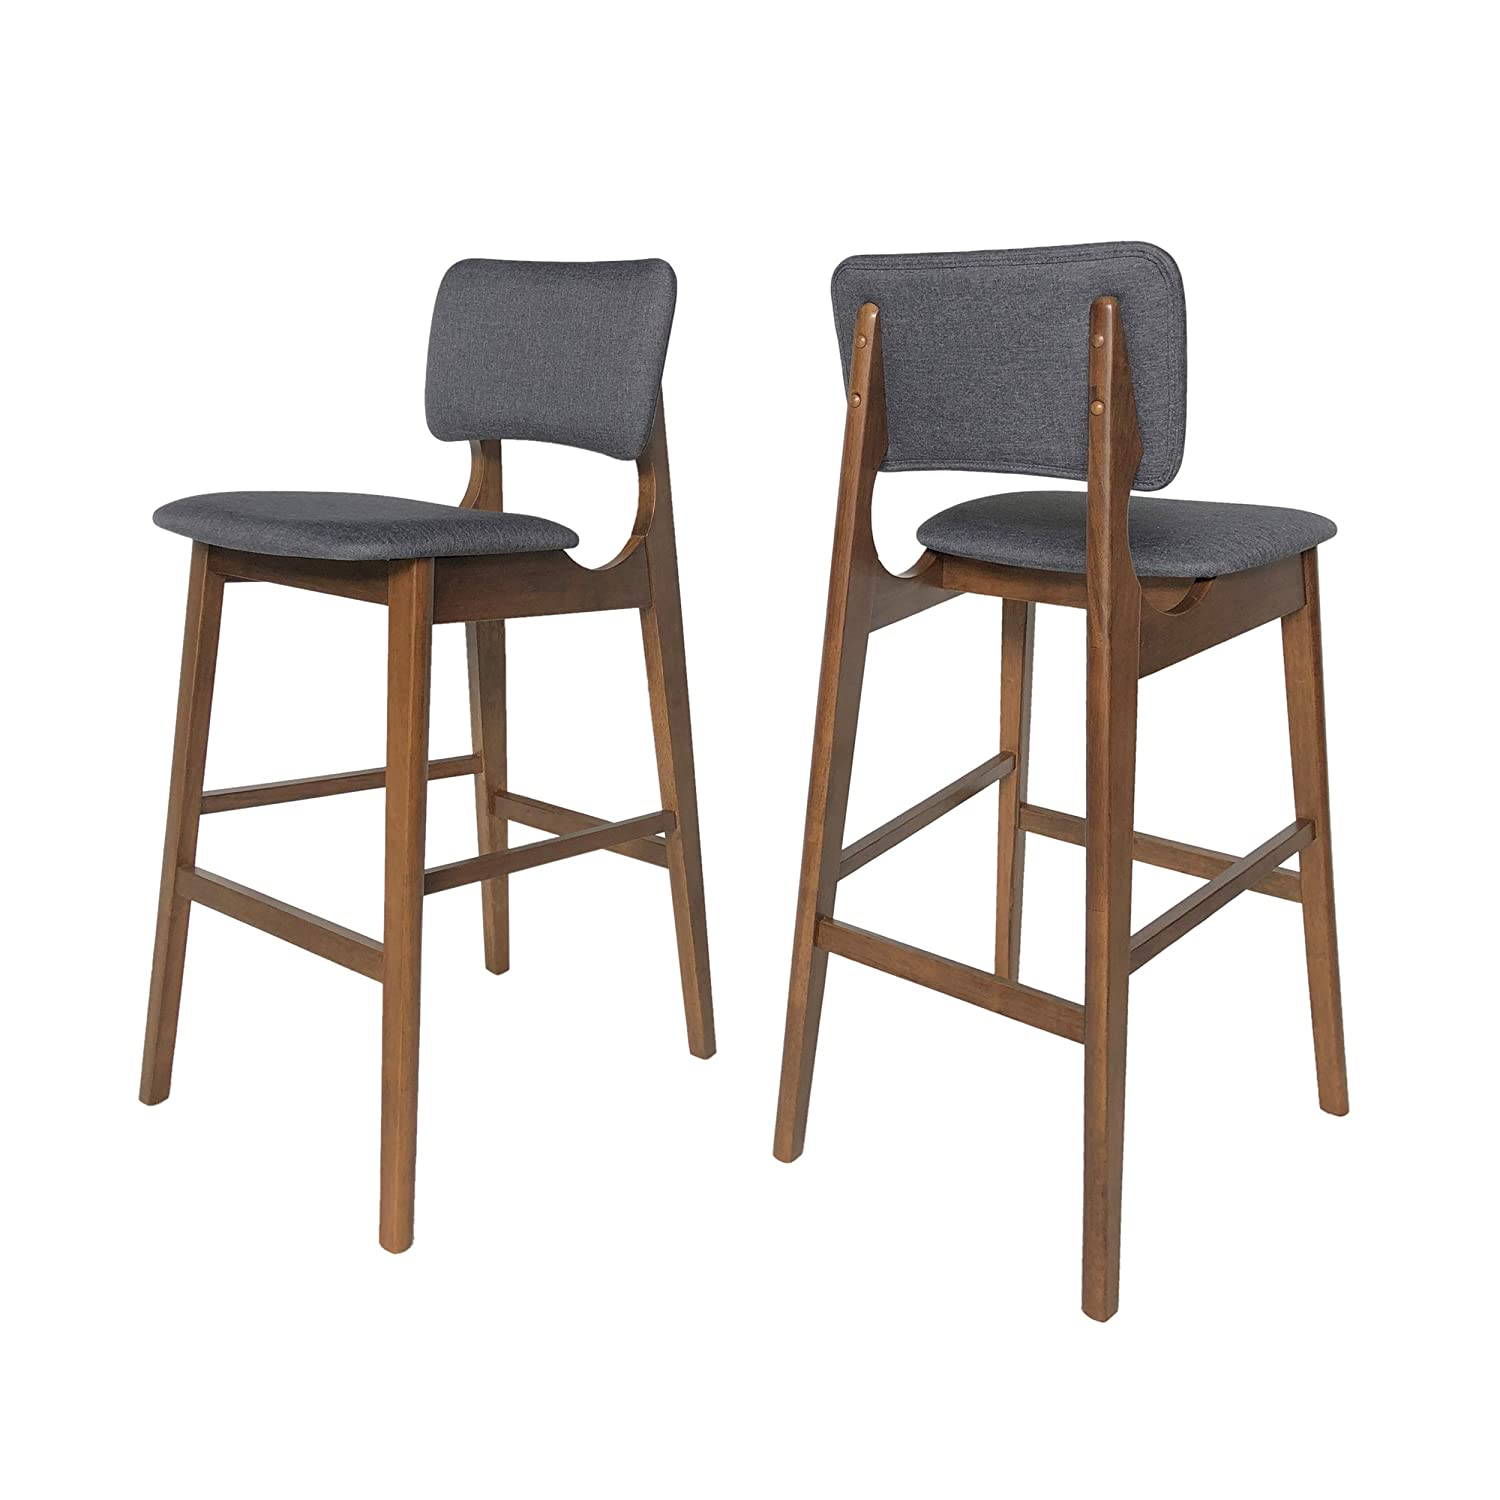 "Christopher Knight Home Luella 42"" Wooden Bar Chair with Fabric Seats (Set of 2), Charcoal and Walnut Finish"